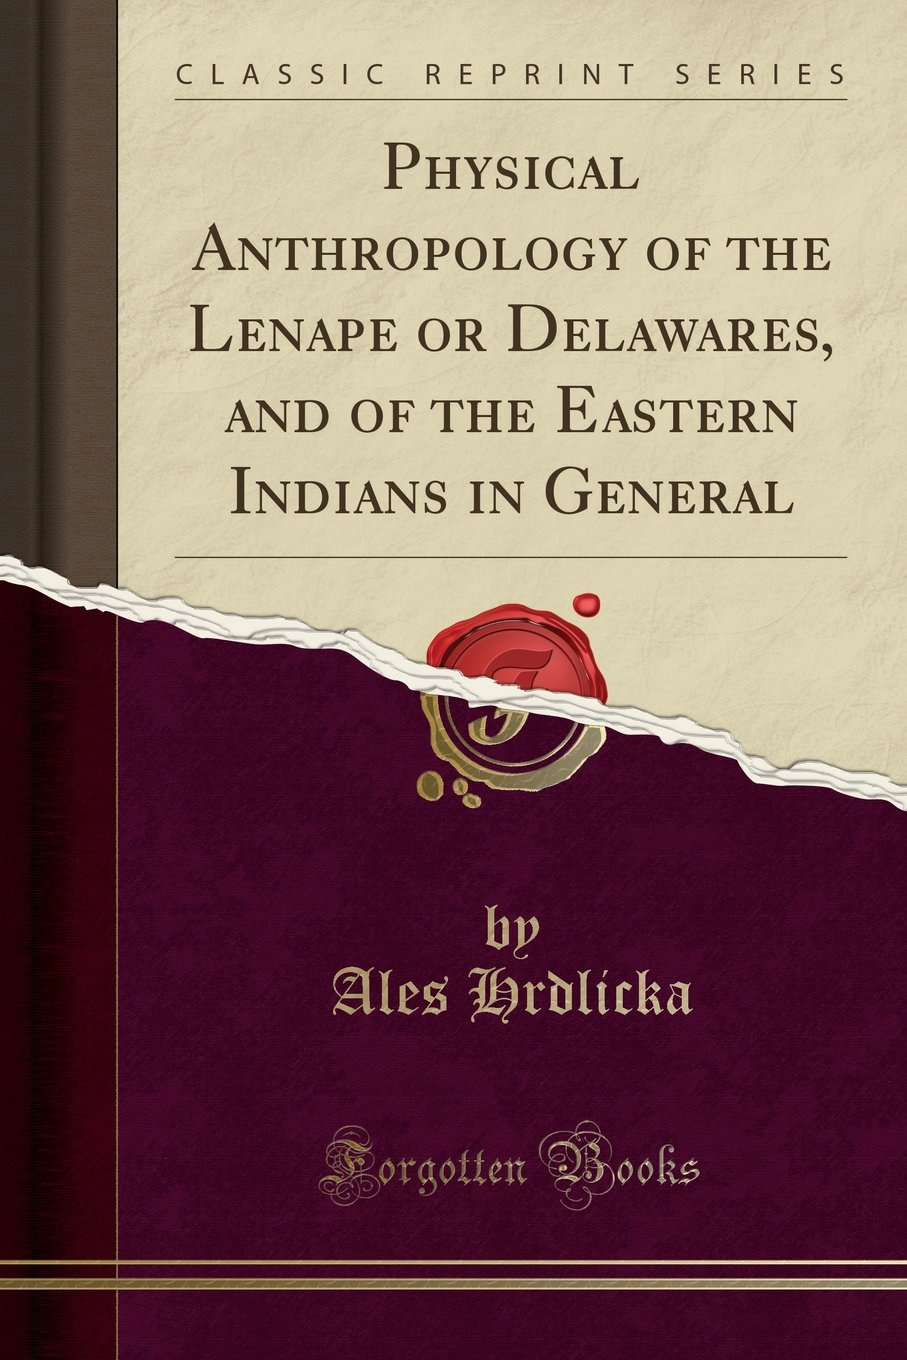 Download Physical Anthropology of the Lenape or Delawares, and of the Eastern Indians in General (Classic Reprint) PDF